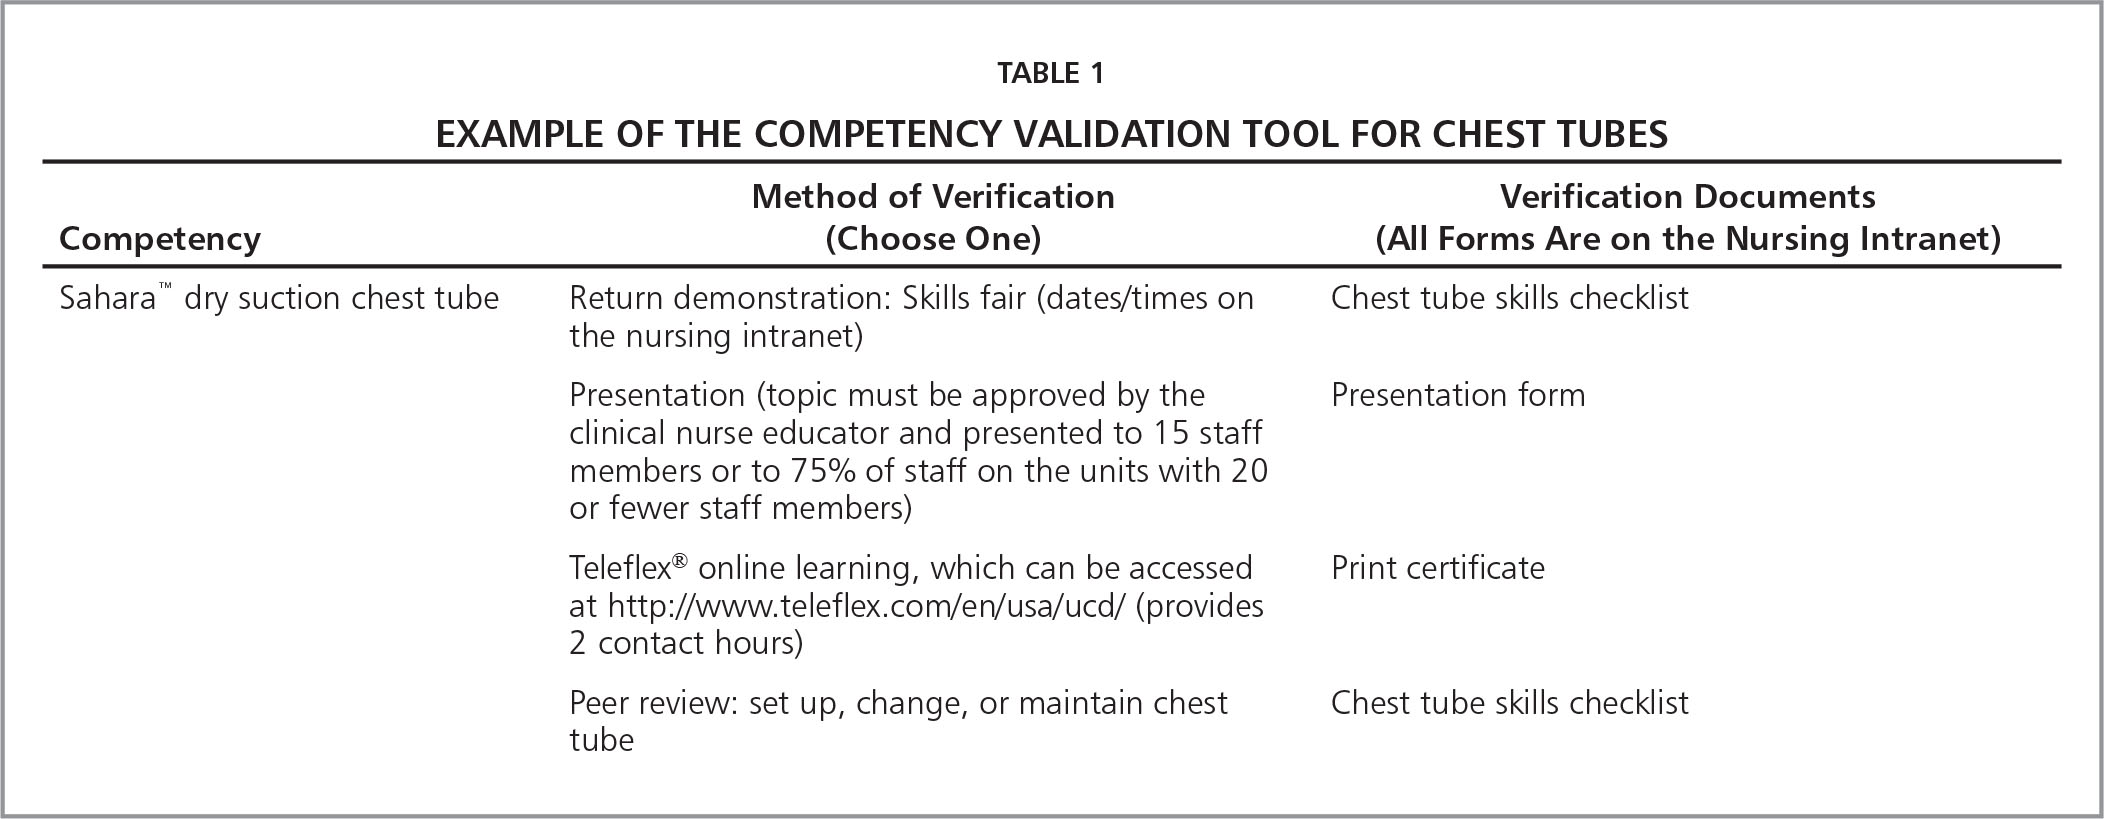 Example of The Competency Validation Tool for Chest Tubes